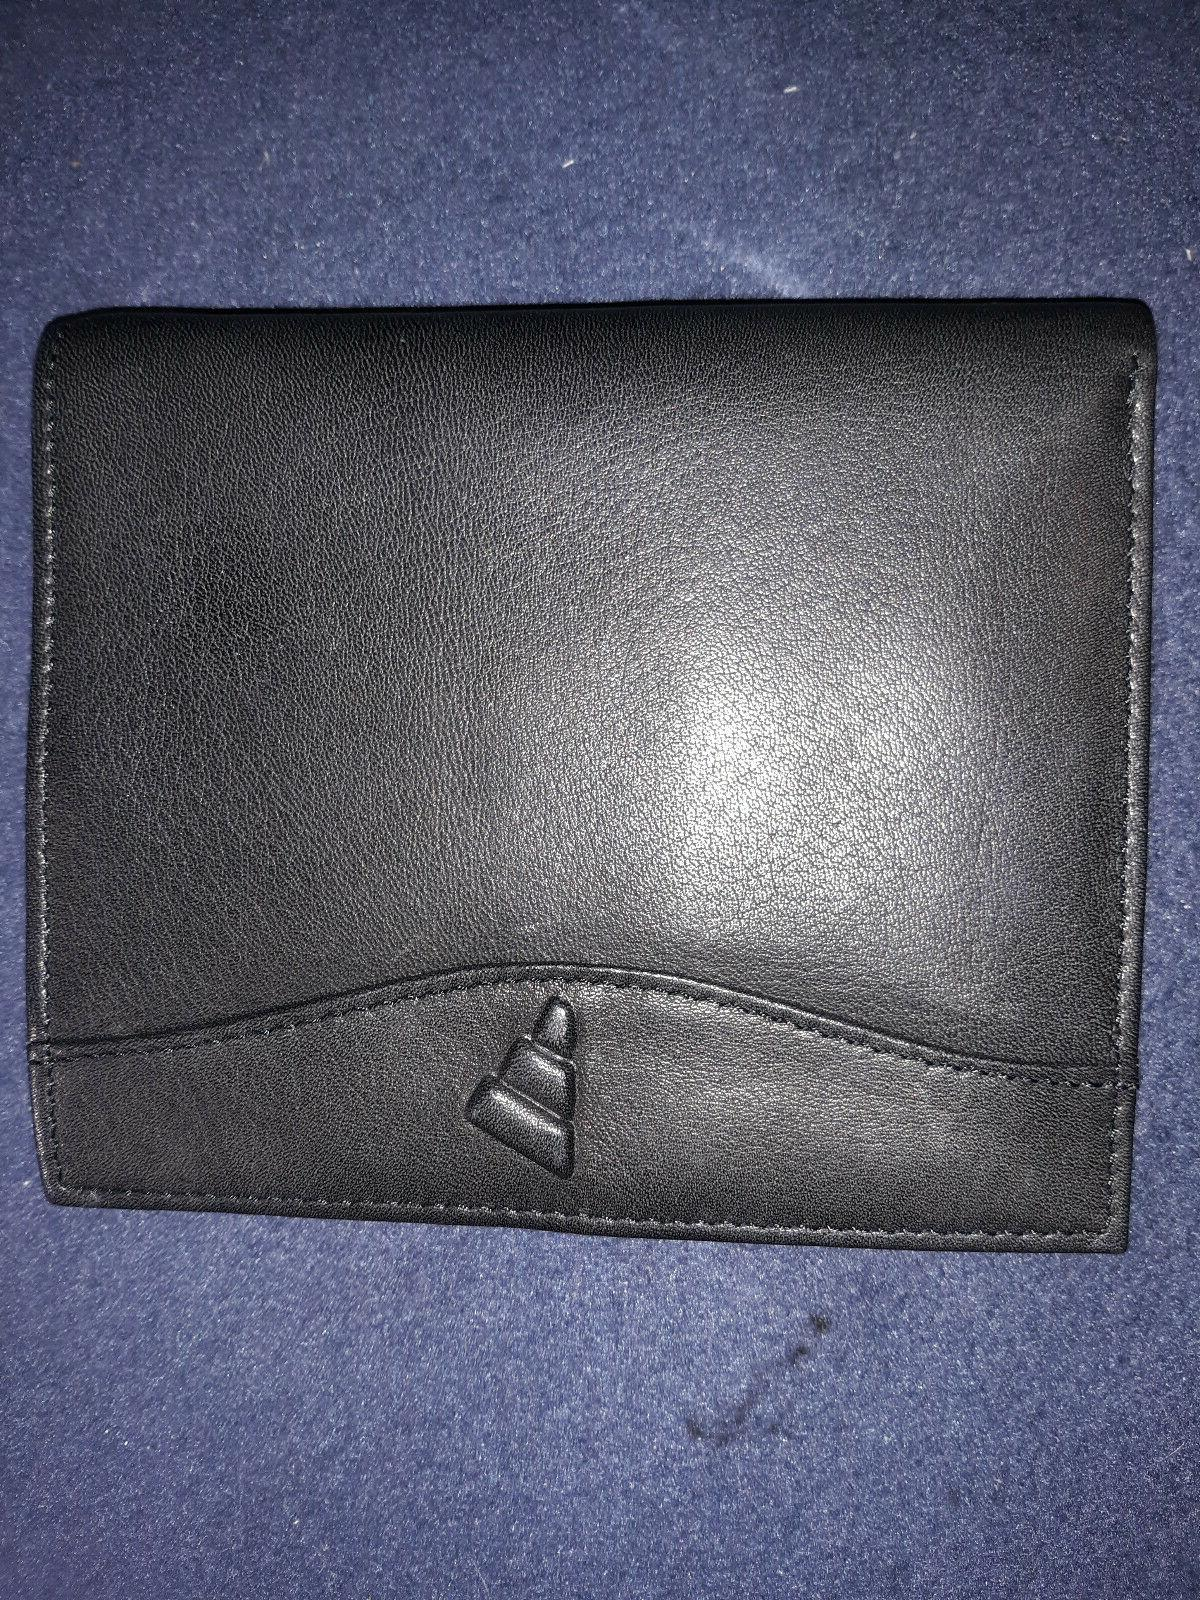 brand new genuine leather men s wallet